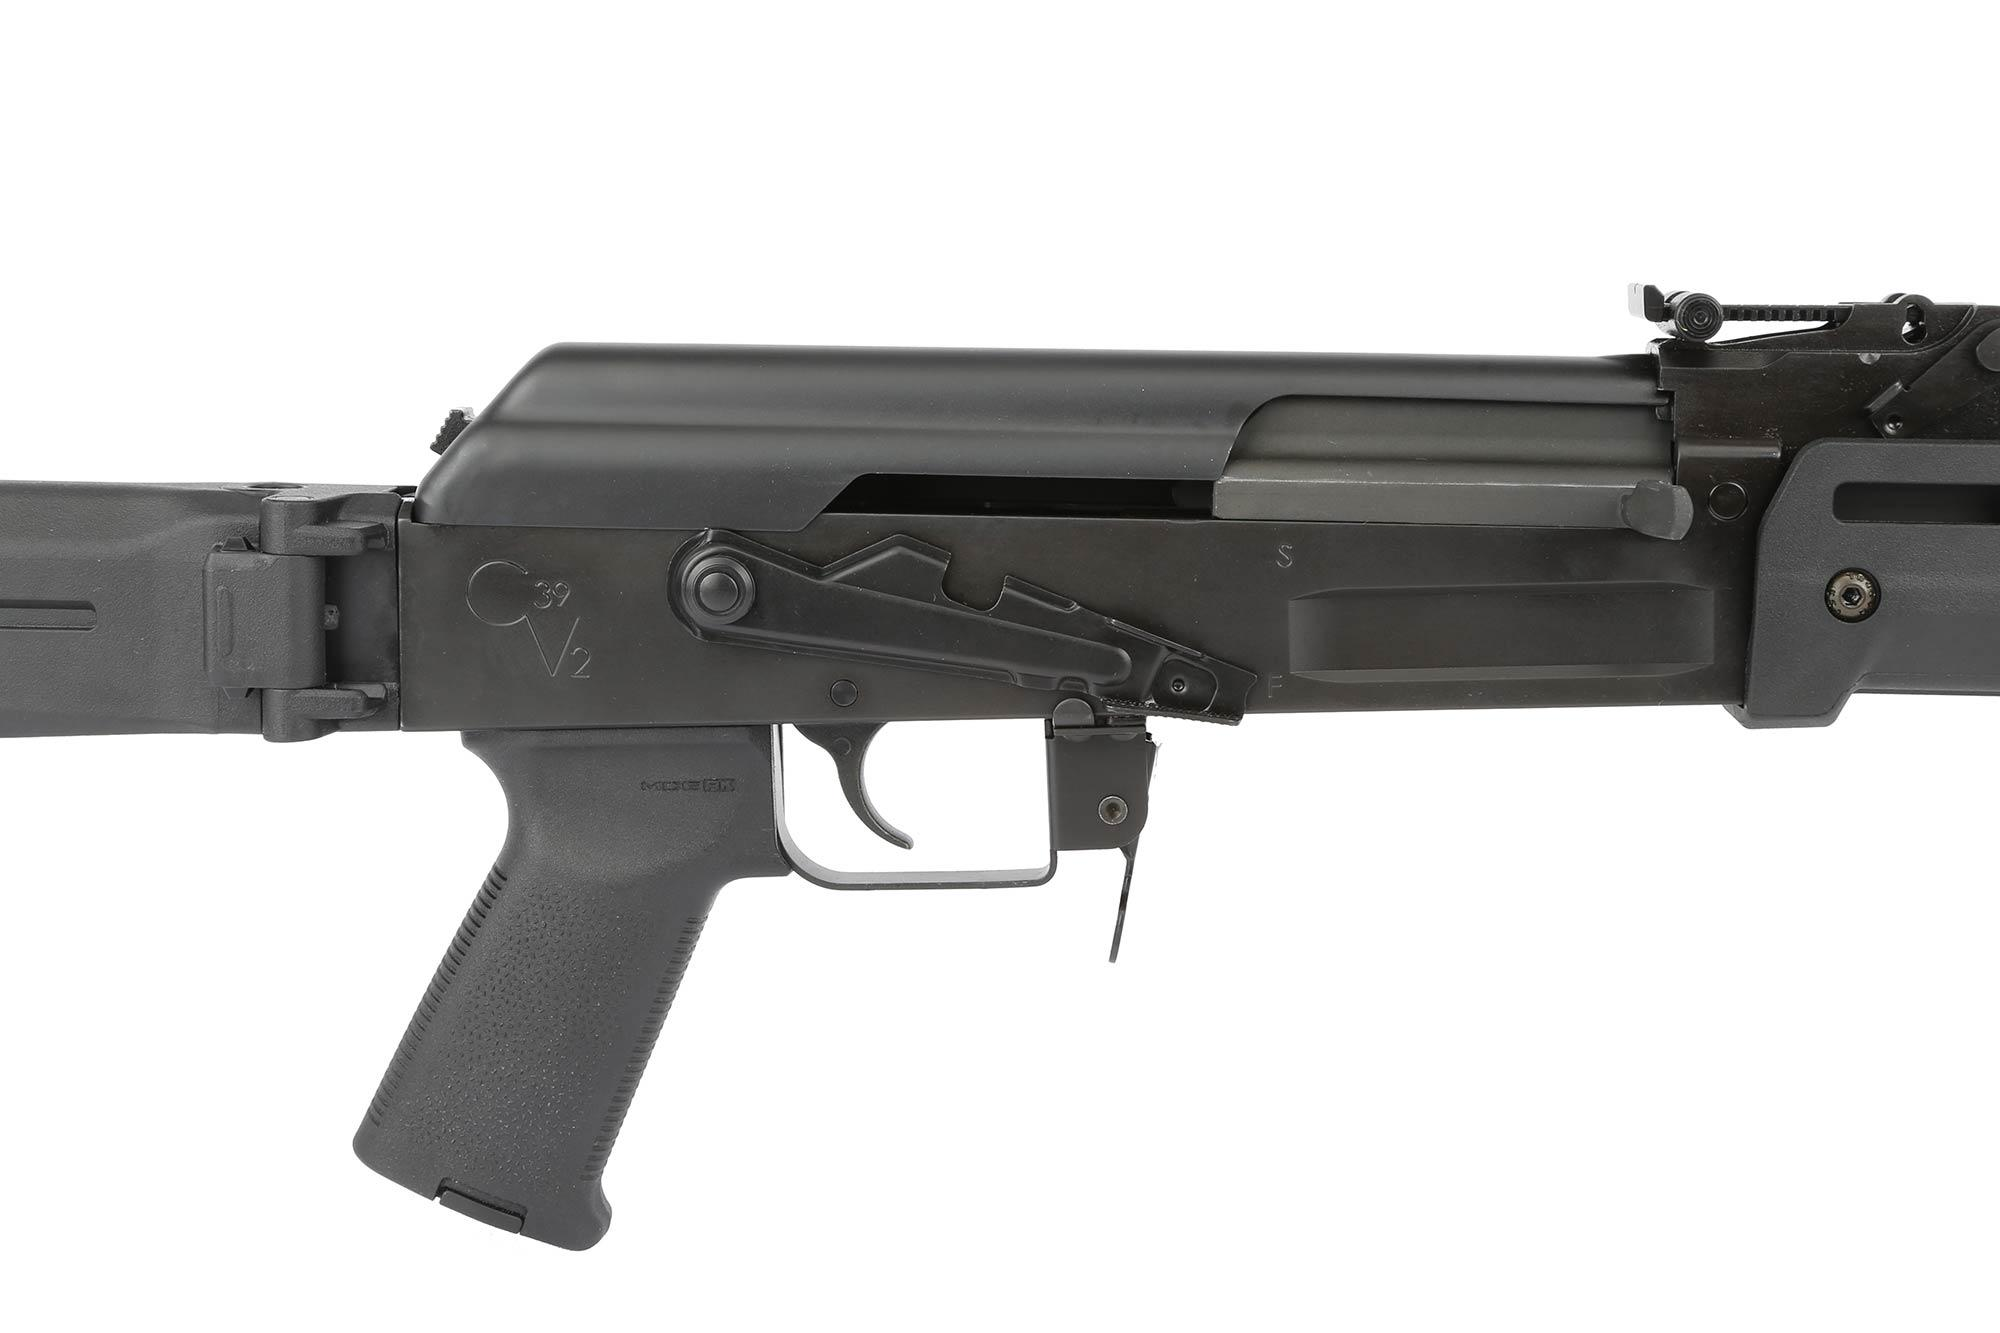 The Century Arms C39v2 Zhukov AK47 rifle is fully assembled with polymer Magpul furniture